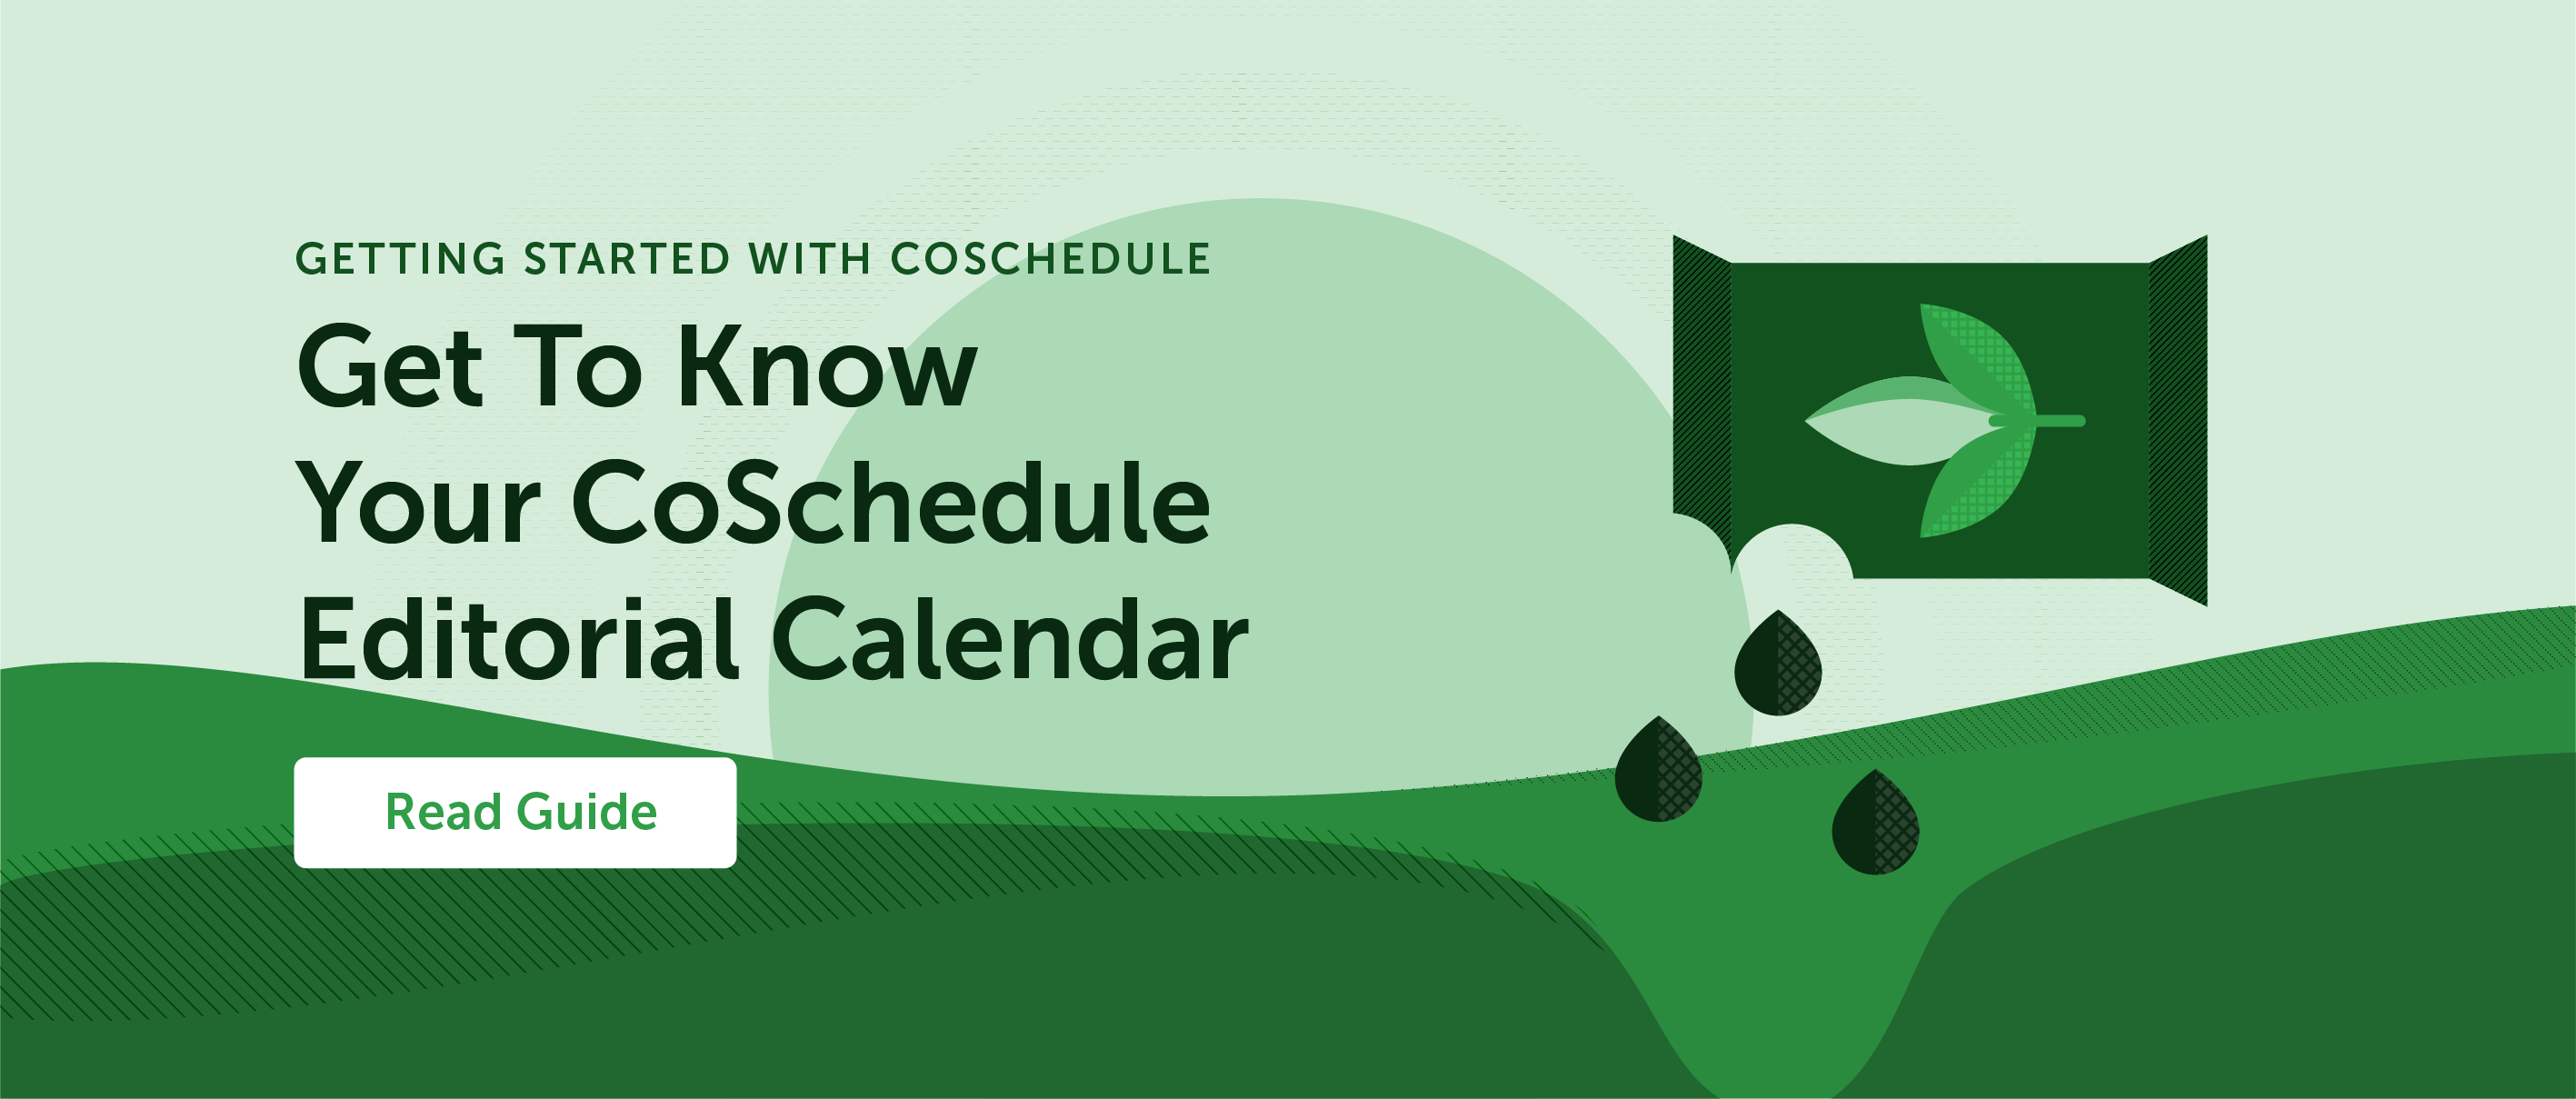 Get to know your CoSchedule editorial calendar.